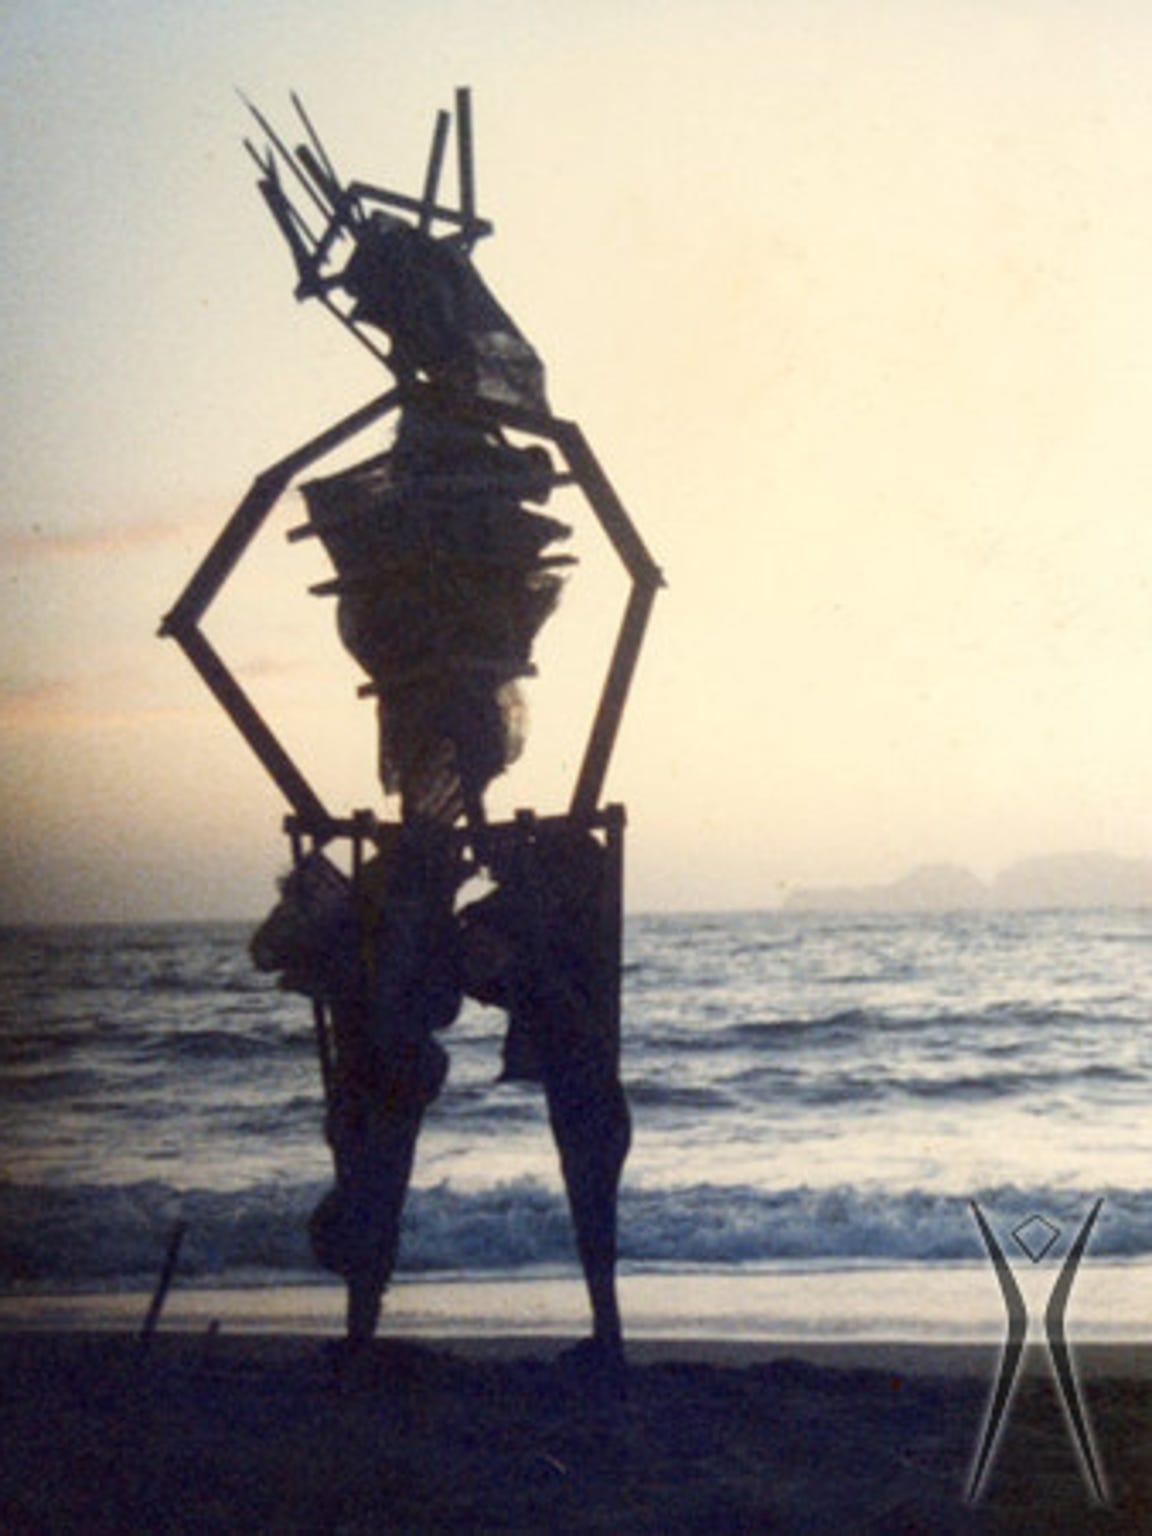 An image of the first man built in 1986 by Jerry James and Larry Harvey on Baker Beach in San Francisco.